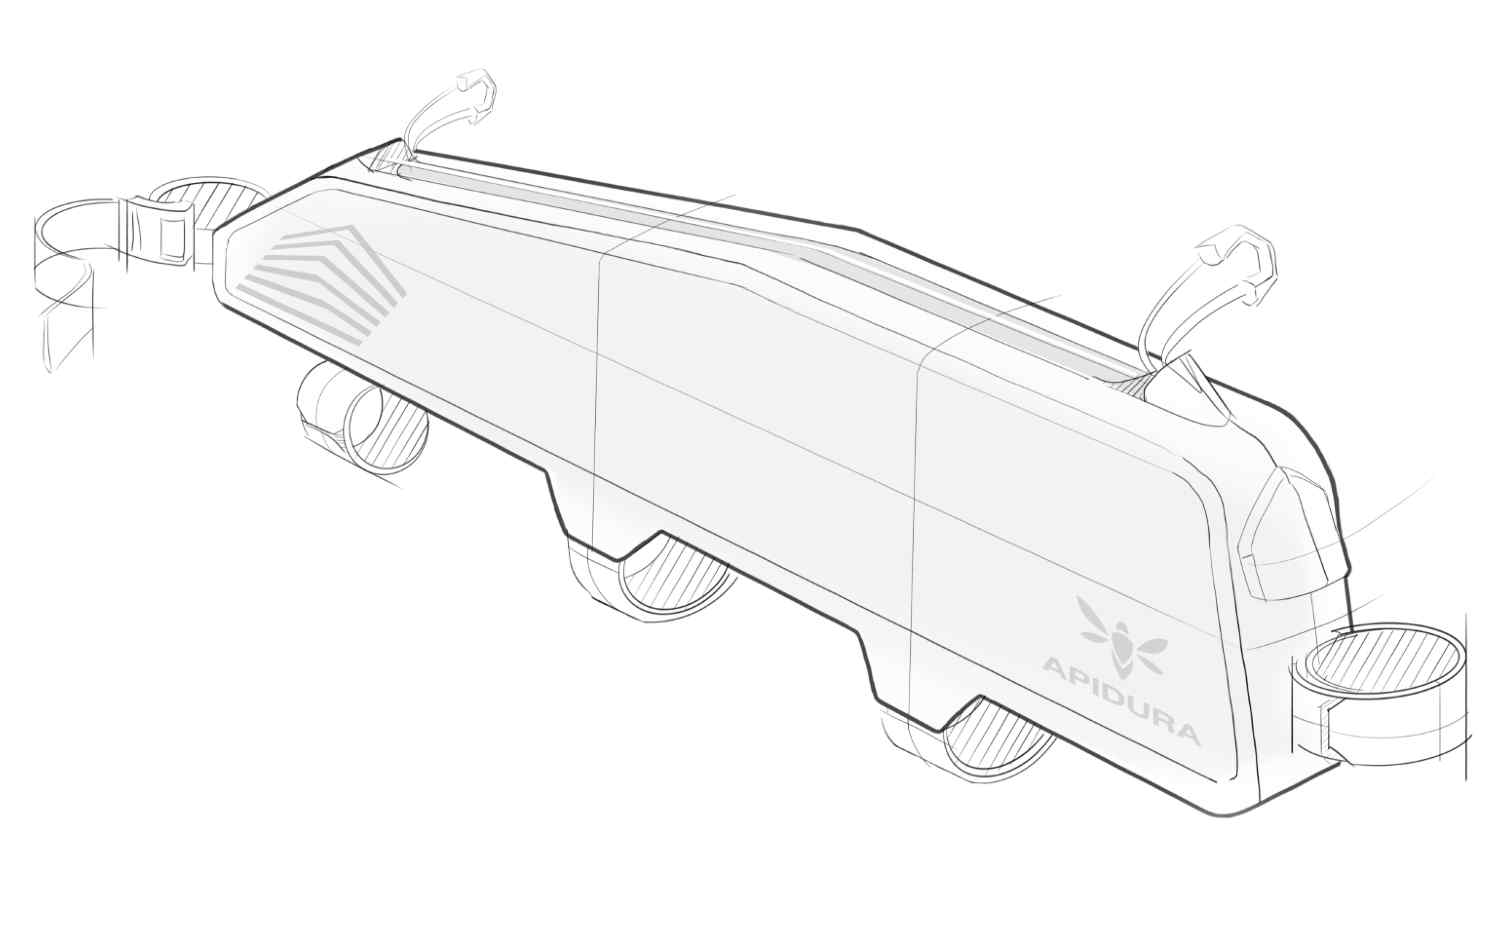 A design sketch of the Racing Long Top Tube Pack